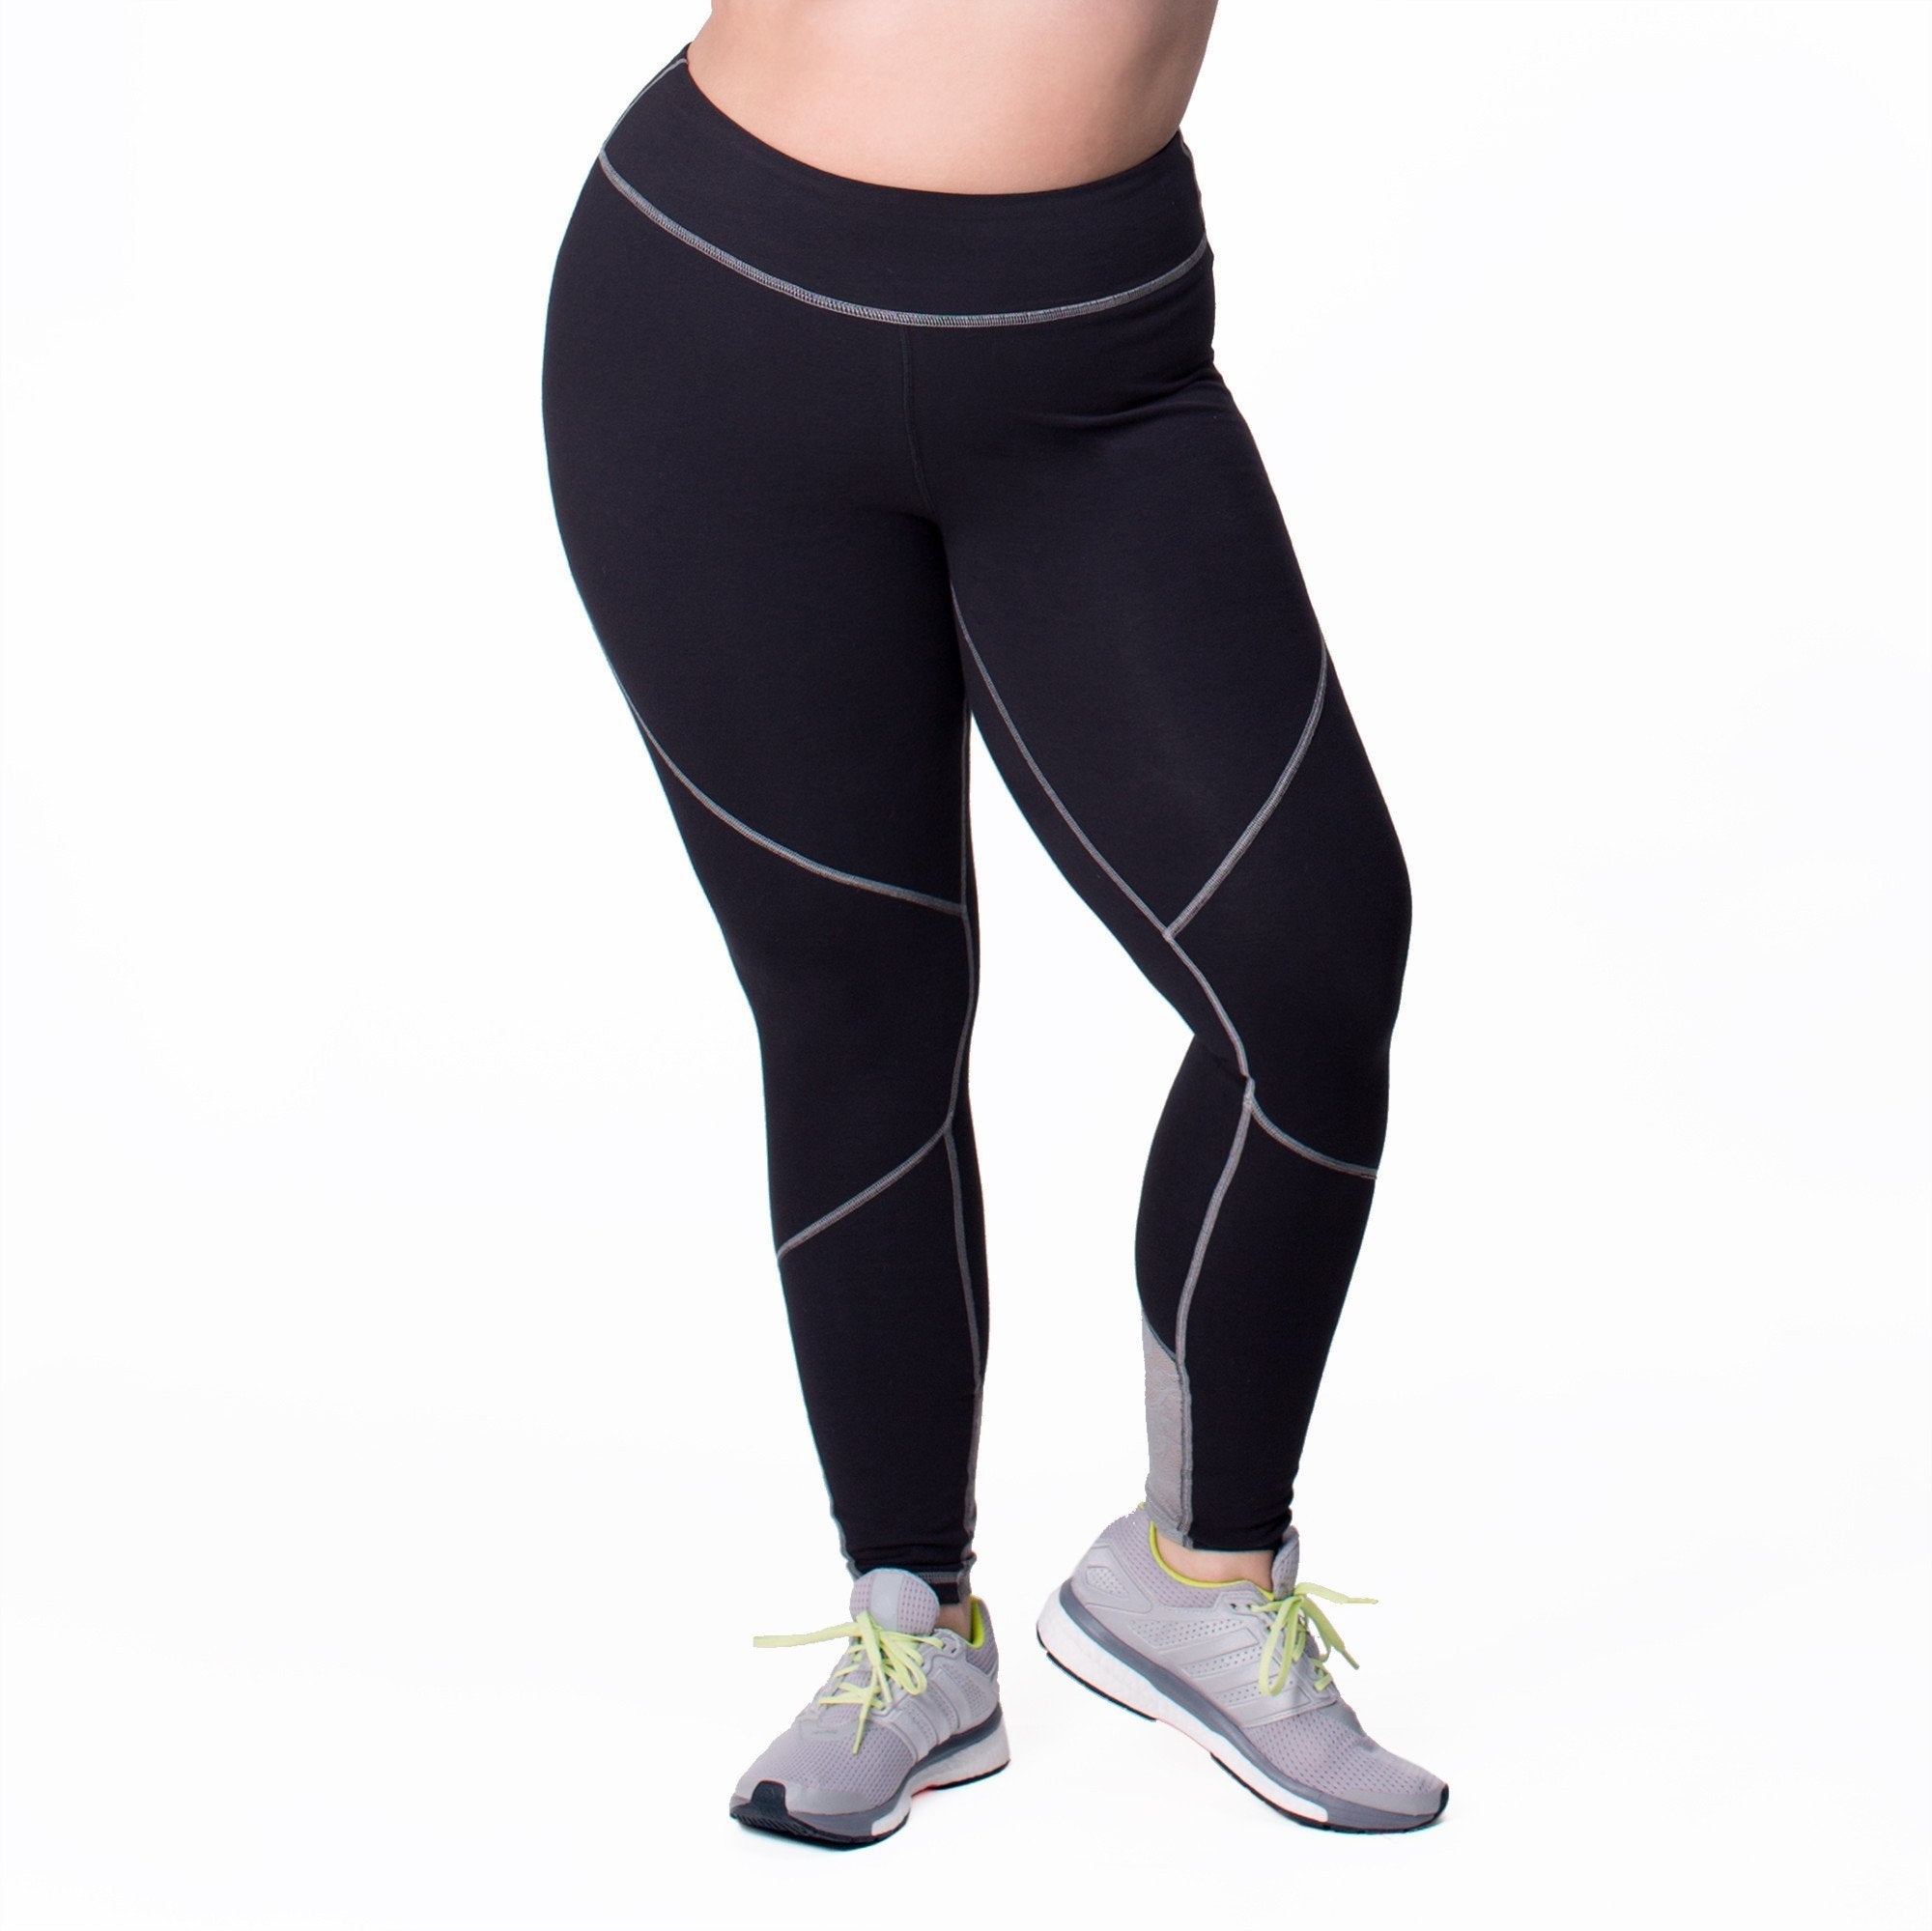 Michelle Legging - Rainbeau Curves, 14/16 / Black, activewear, athleisure, fitness, workout, gym, performance, womens, ladies, plus size, curvy, full figured, spandex, cotton, polyester - 1